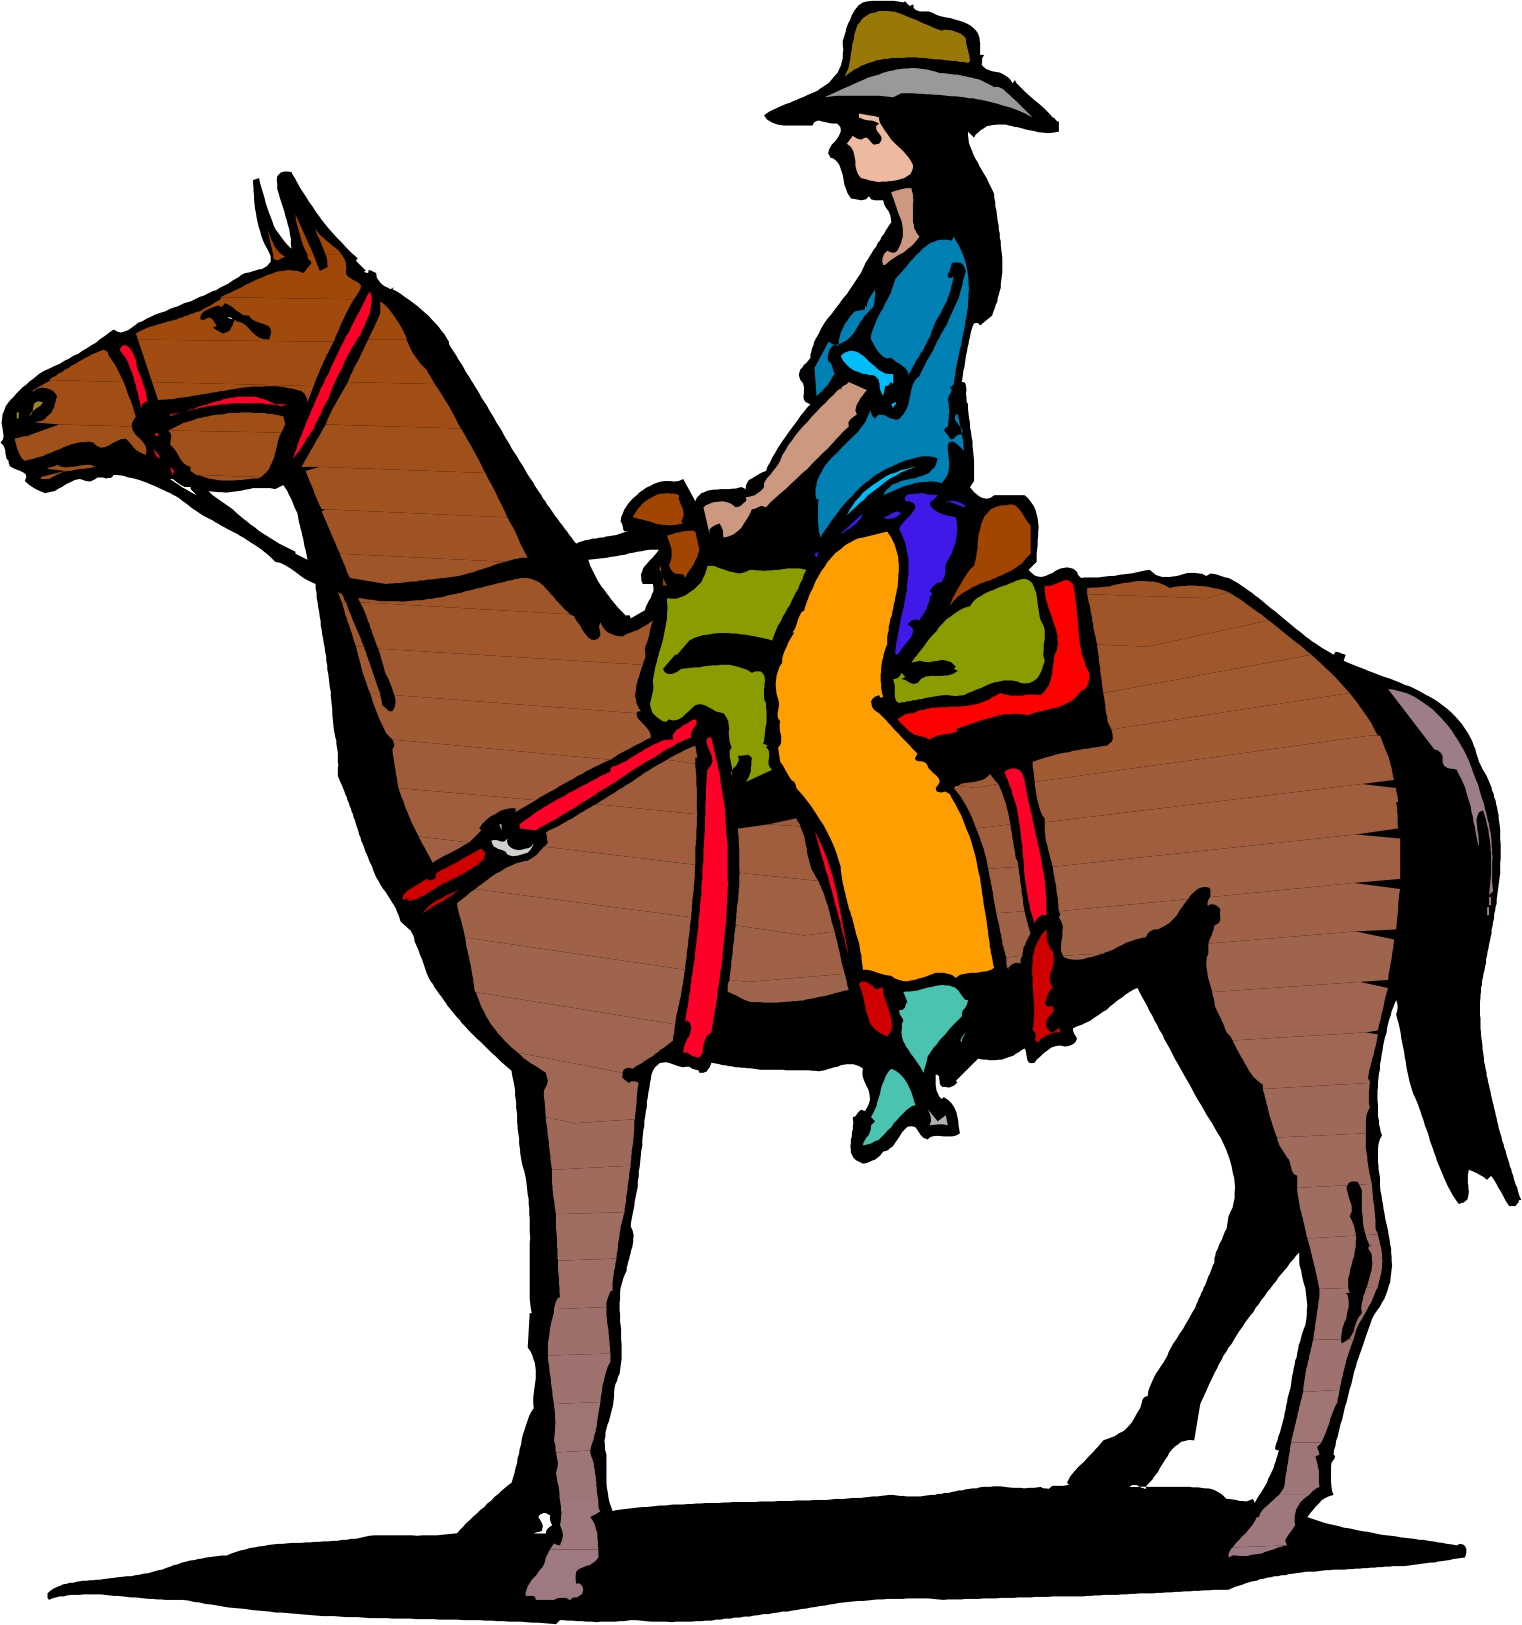 Horse riding clipart #17